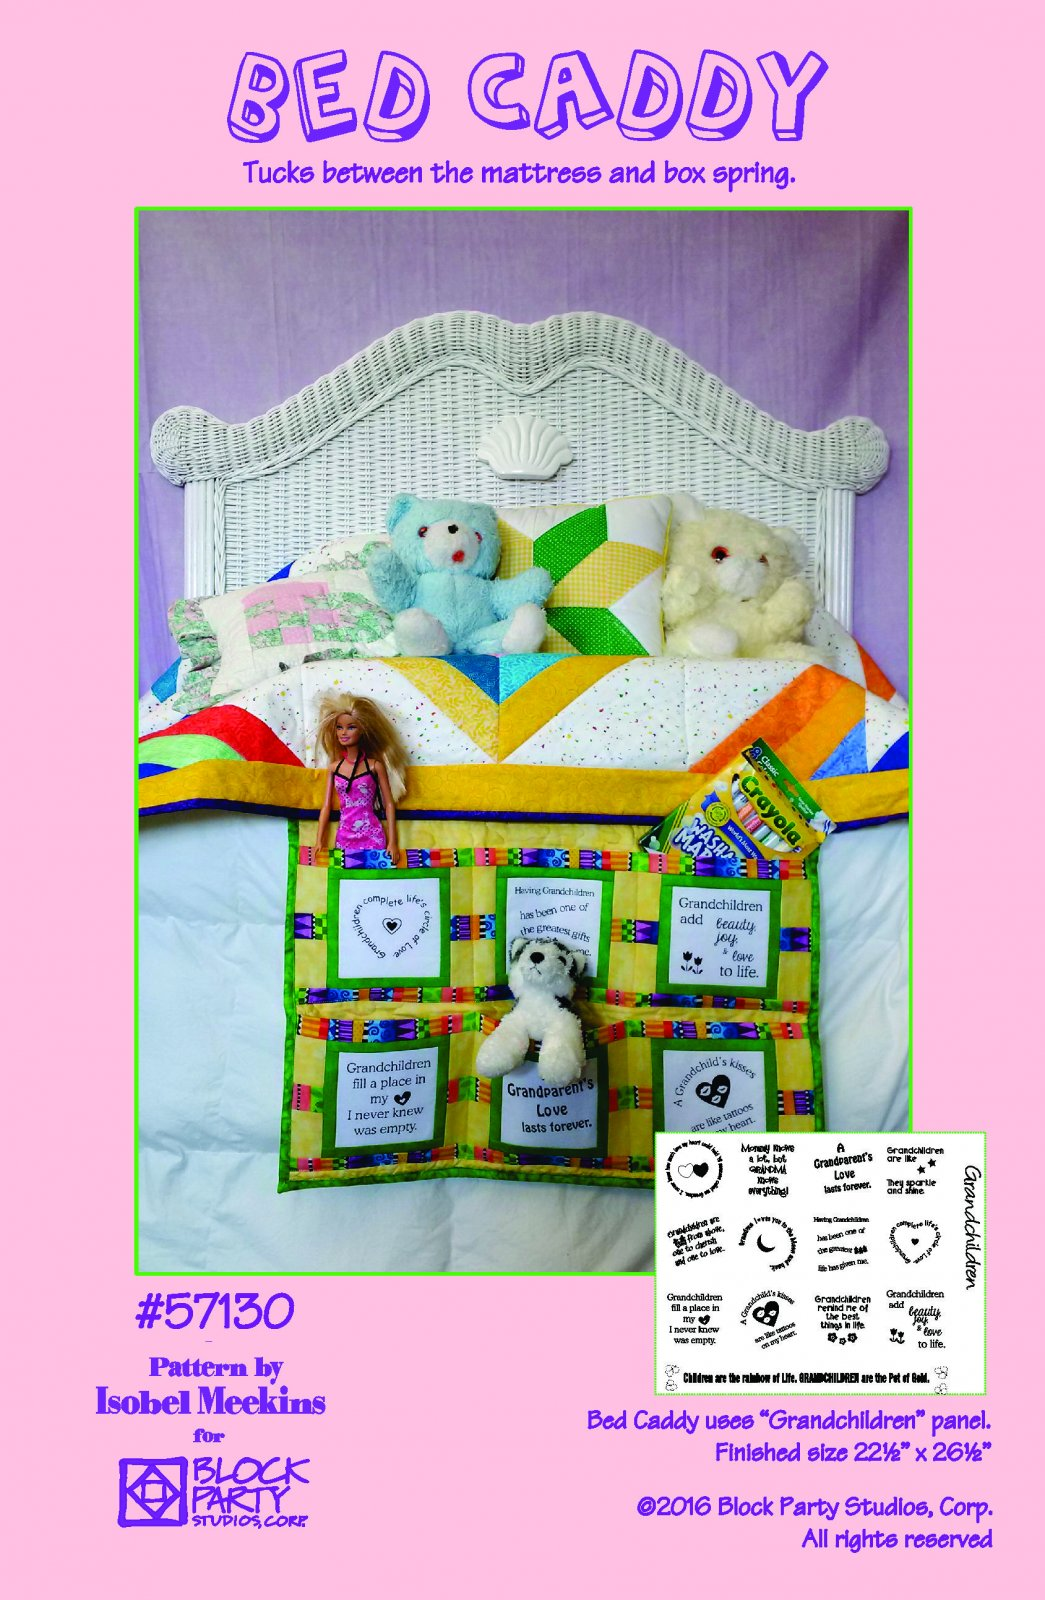 Bed Caddy Pattern with Grandchildren Panel